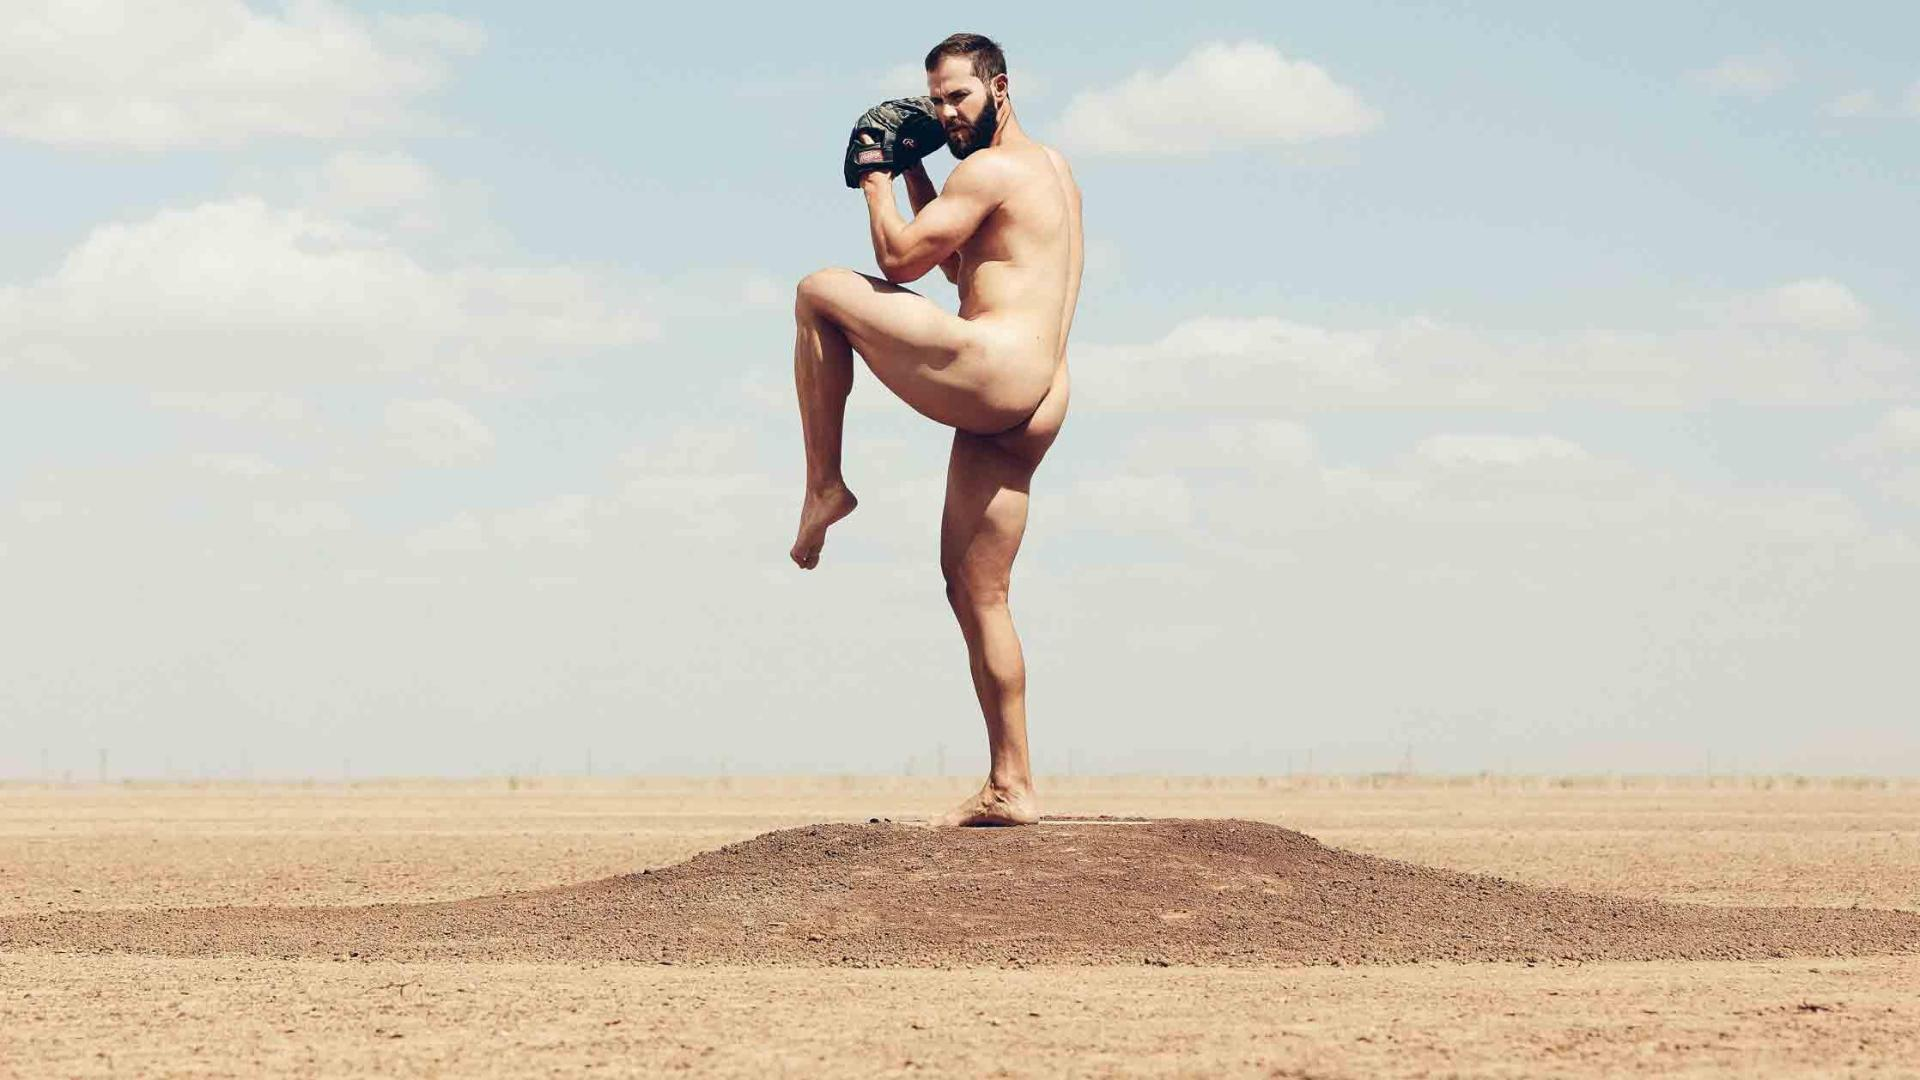 ESPN The Magazines Seventh Annual Body Issue Hits